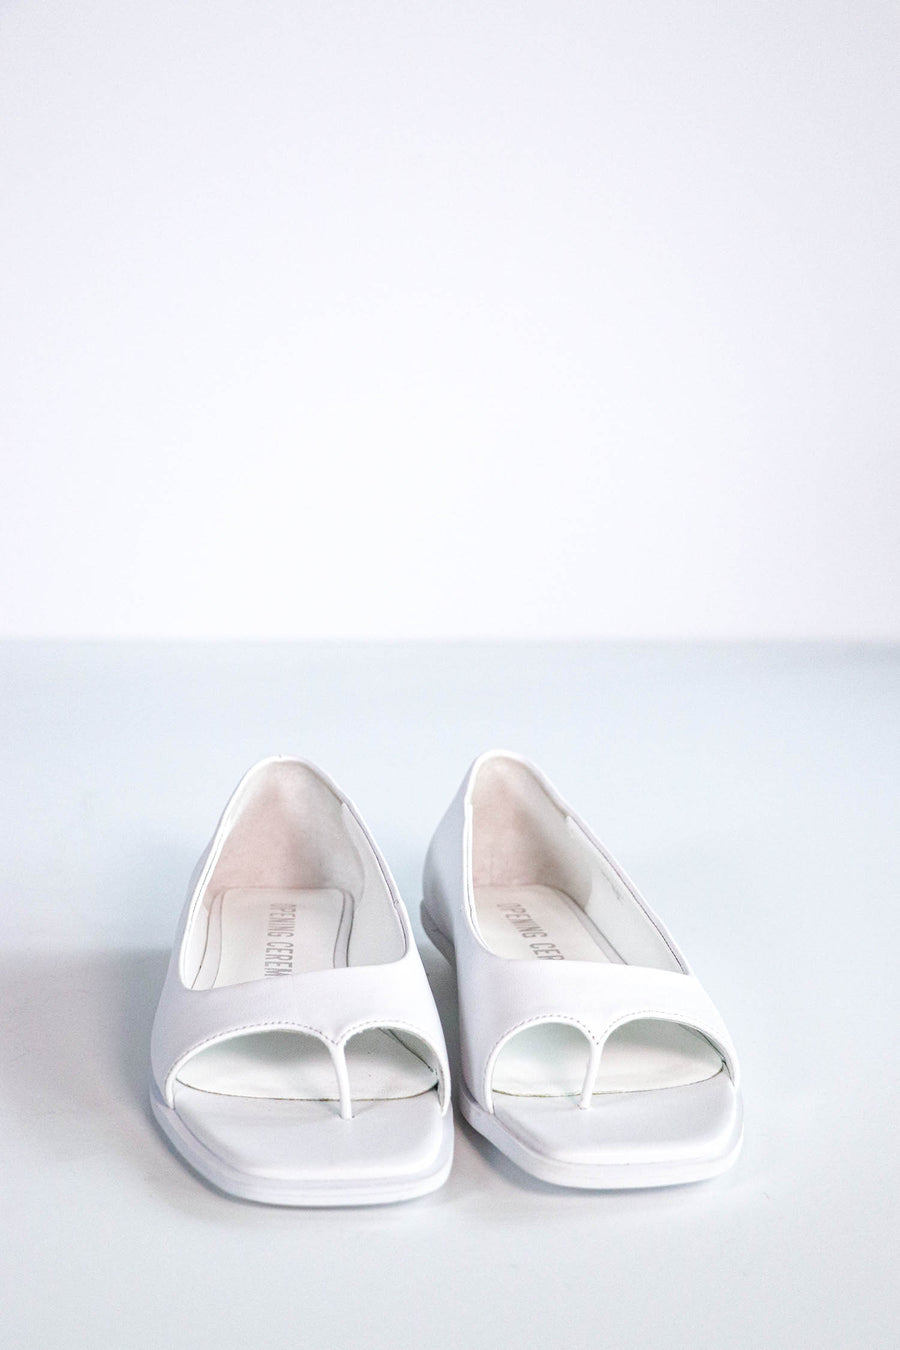 Opening Ceremony - Open Toe Flats - 7.5